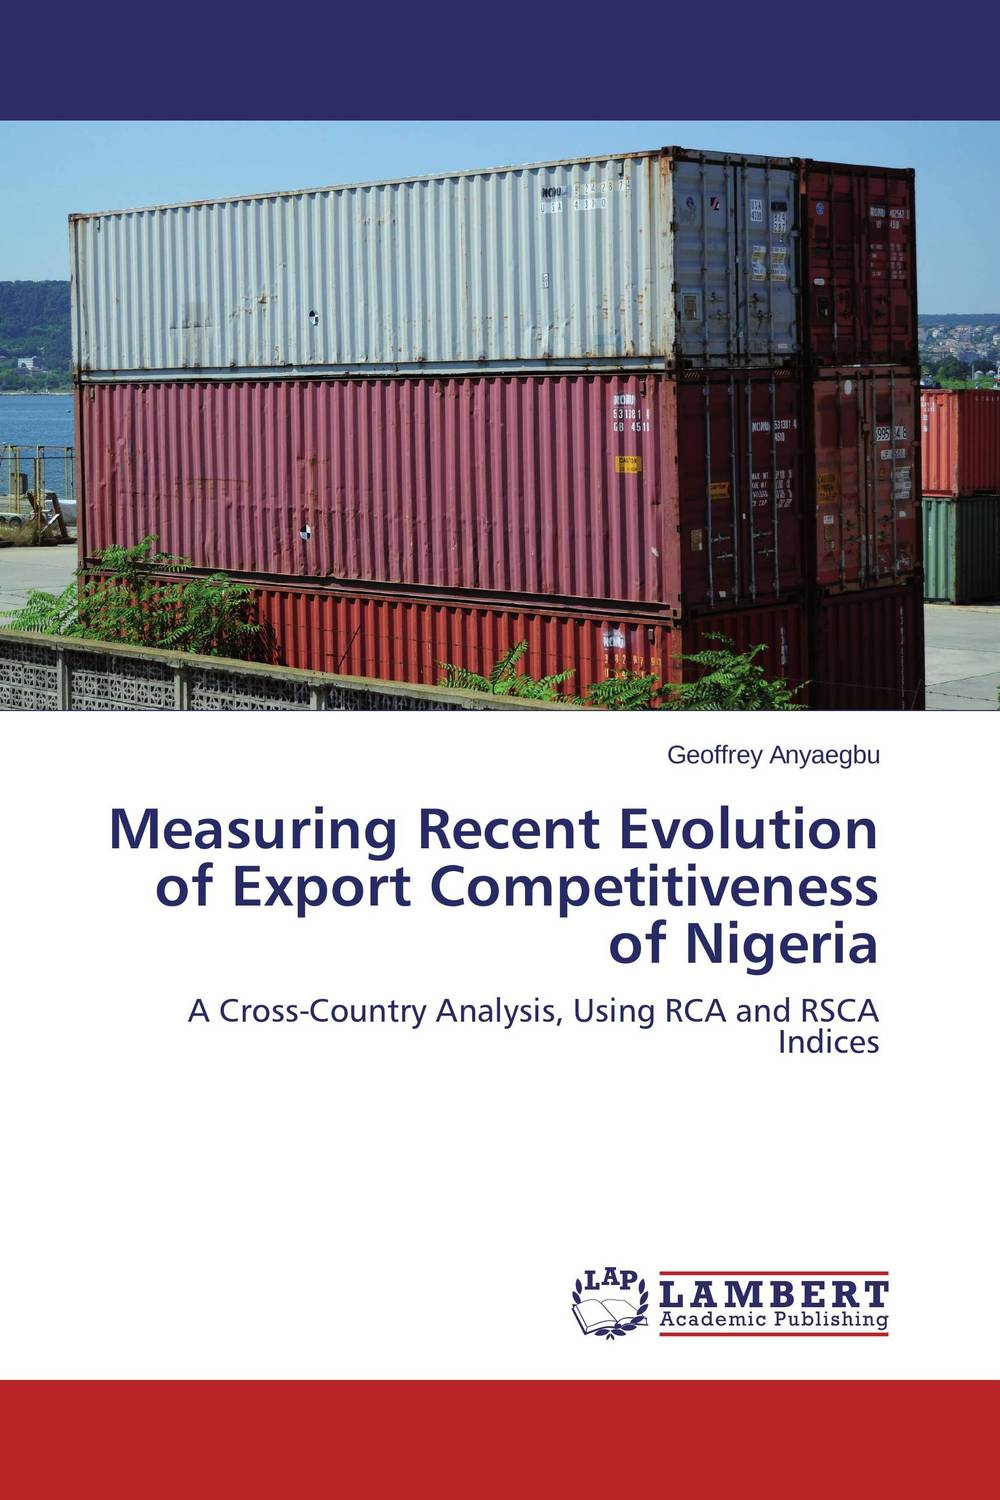 купить  Measuring Recent Evolution of Export Competitiveness of Nigeria  онлайн